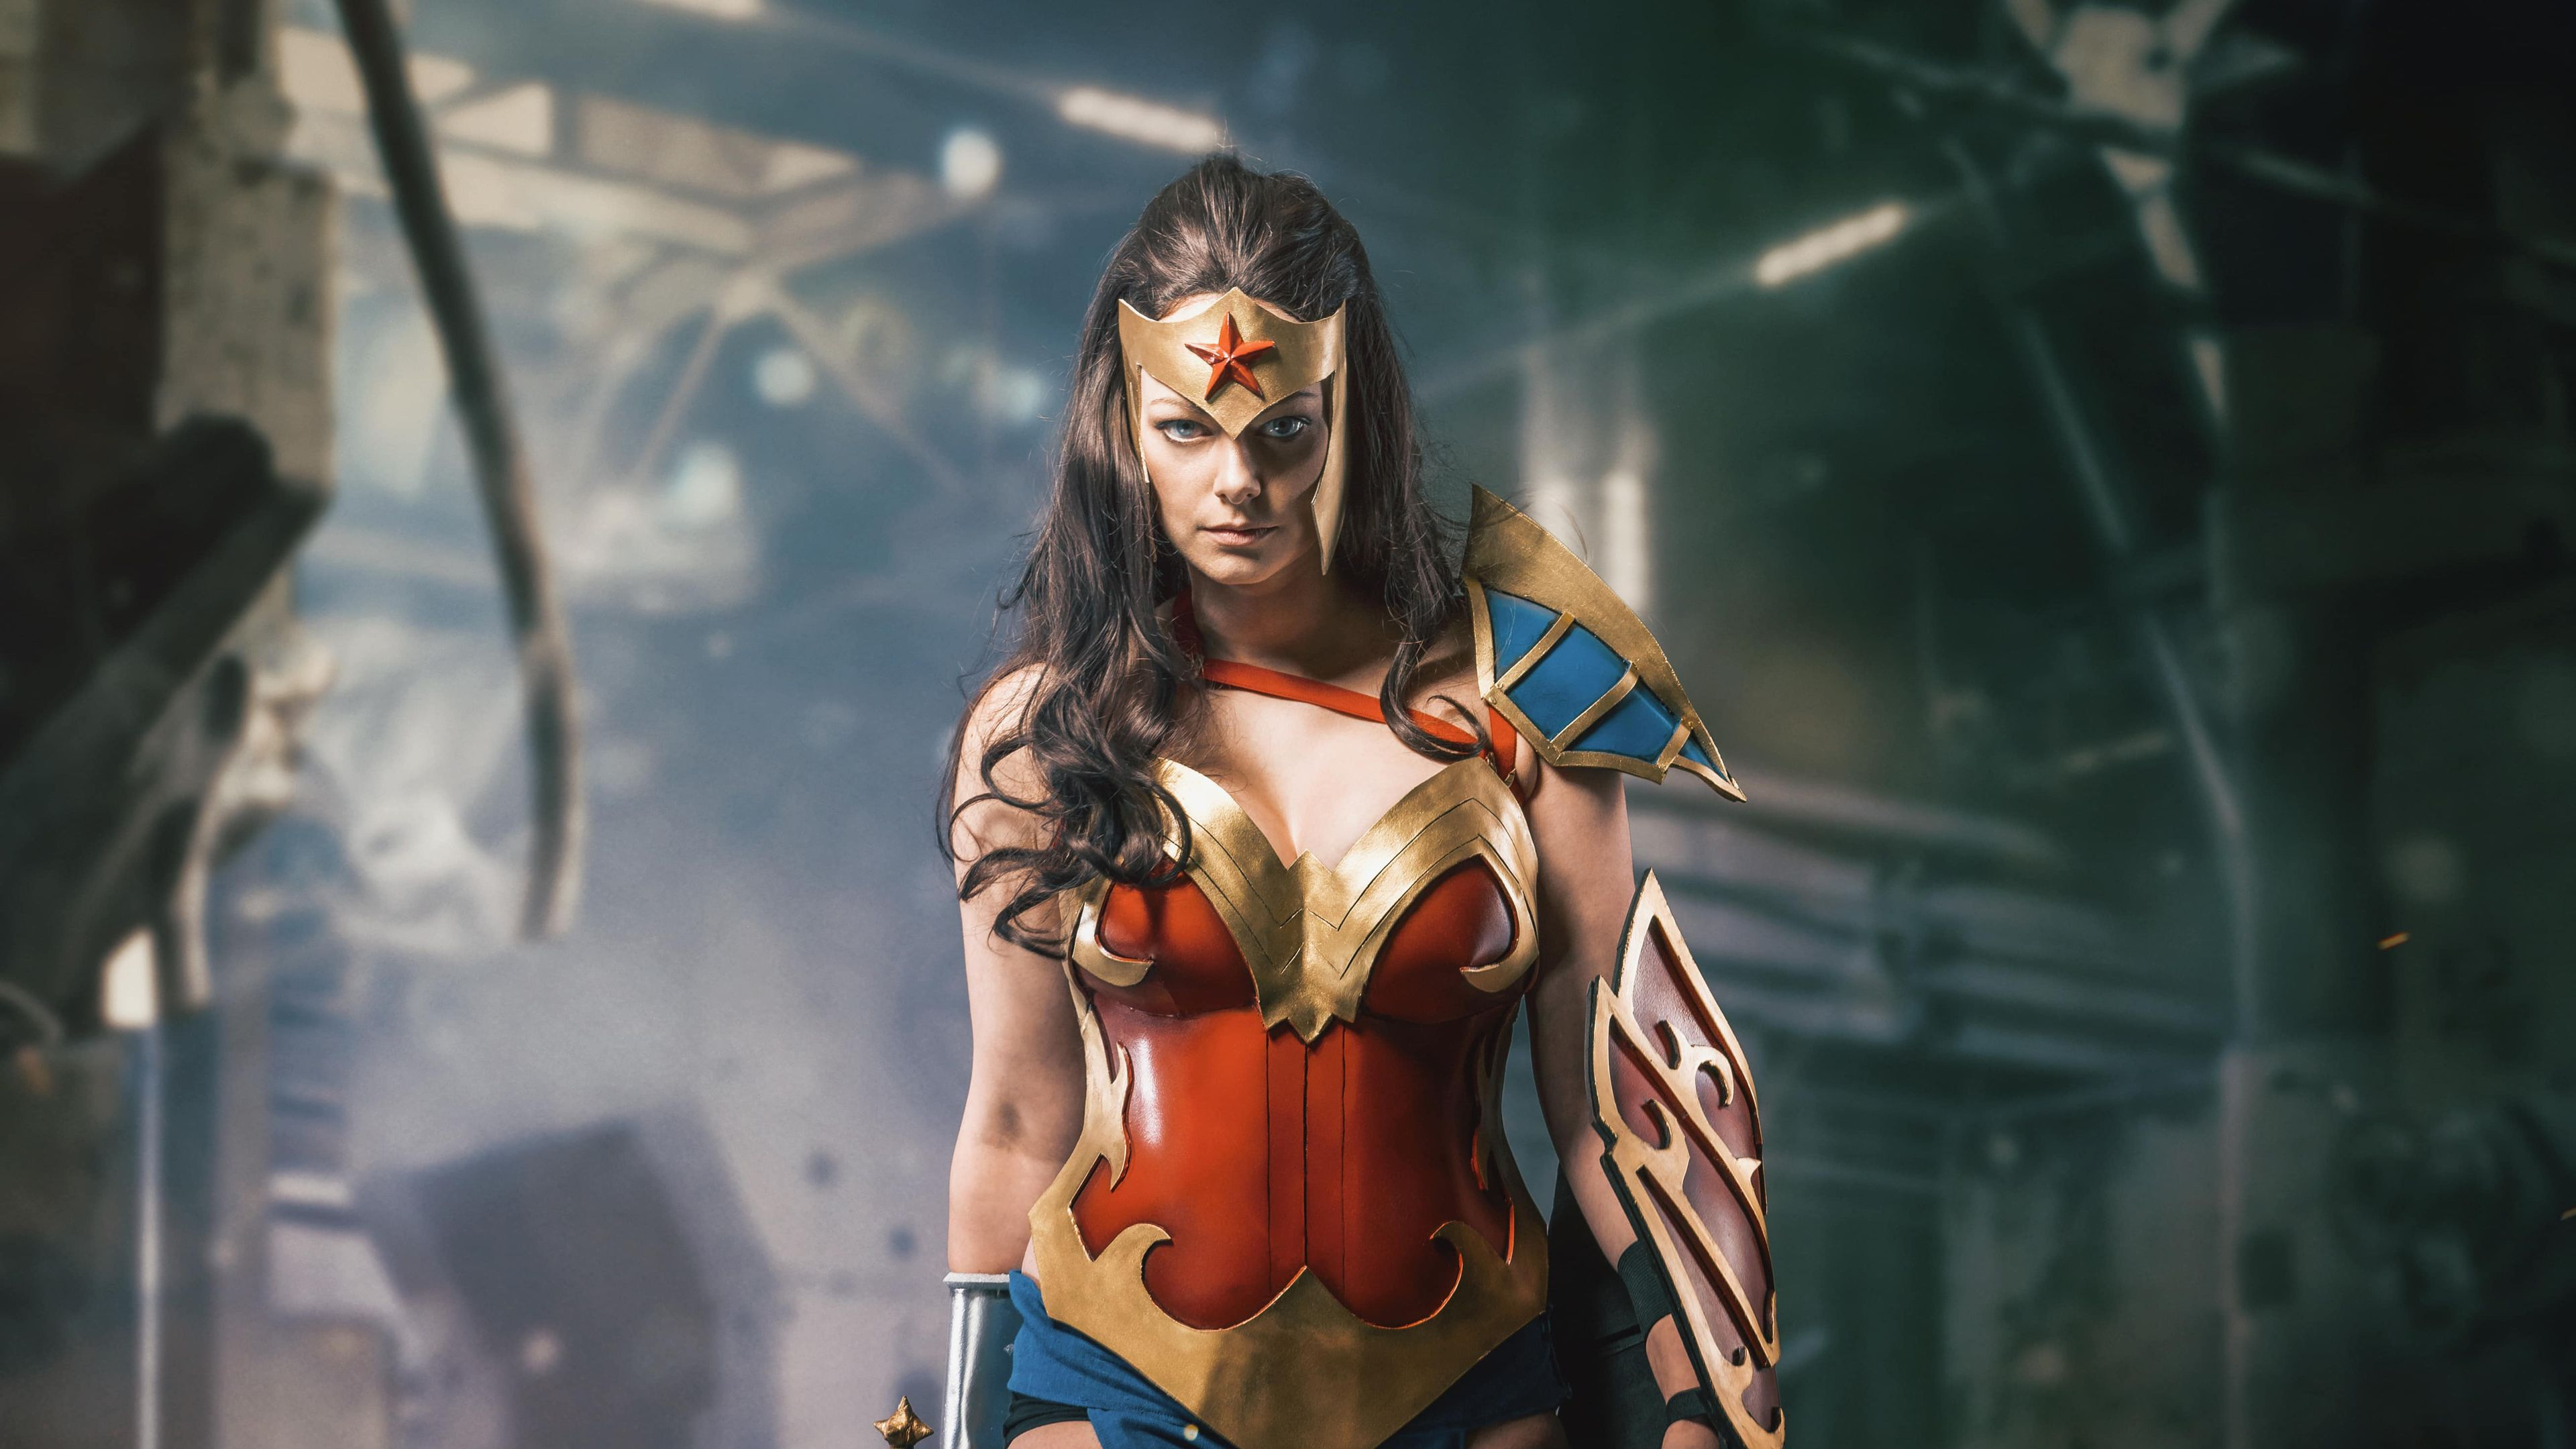 Wonder Woman Cosplay 4k Wonder Woman Wallpapers Superheroes Wallpapers Hd Wallpapers Cosplay Wallpapers 5k Wall Wonder Woman Cosplay Wonder Woman Superhero